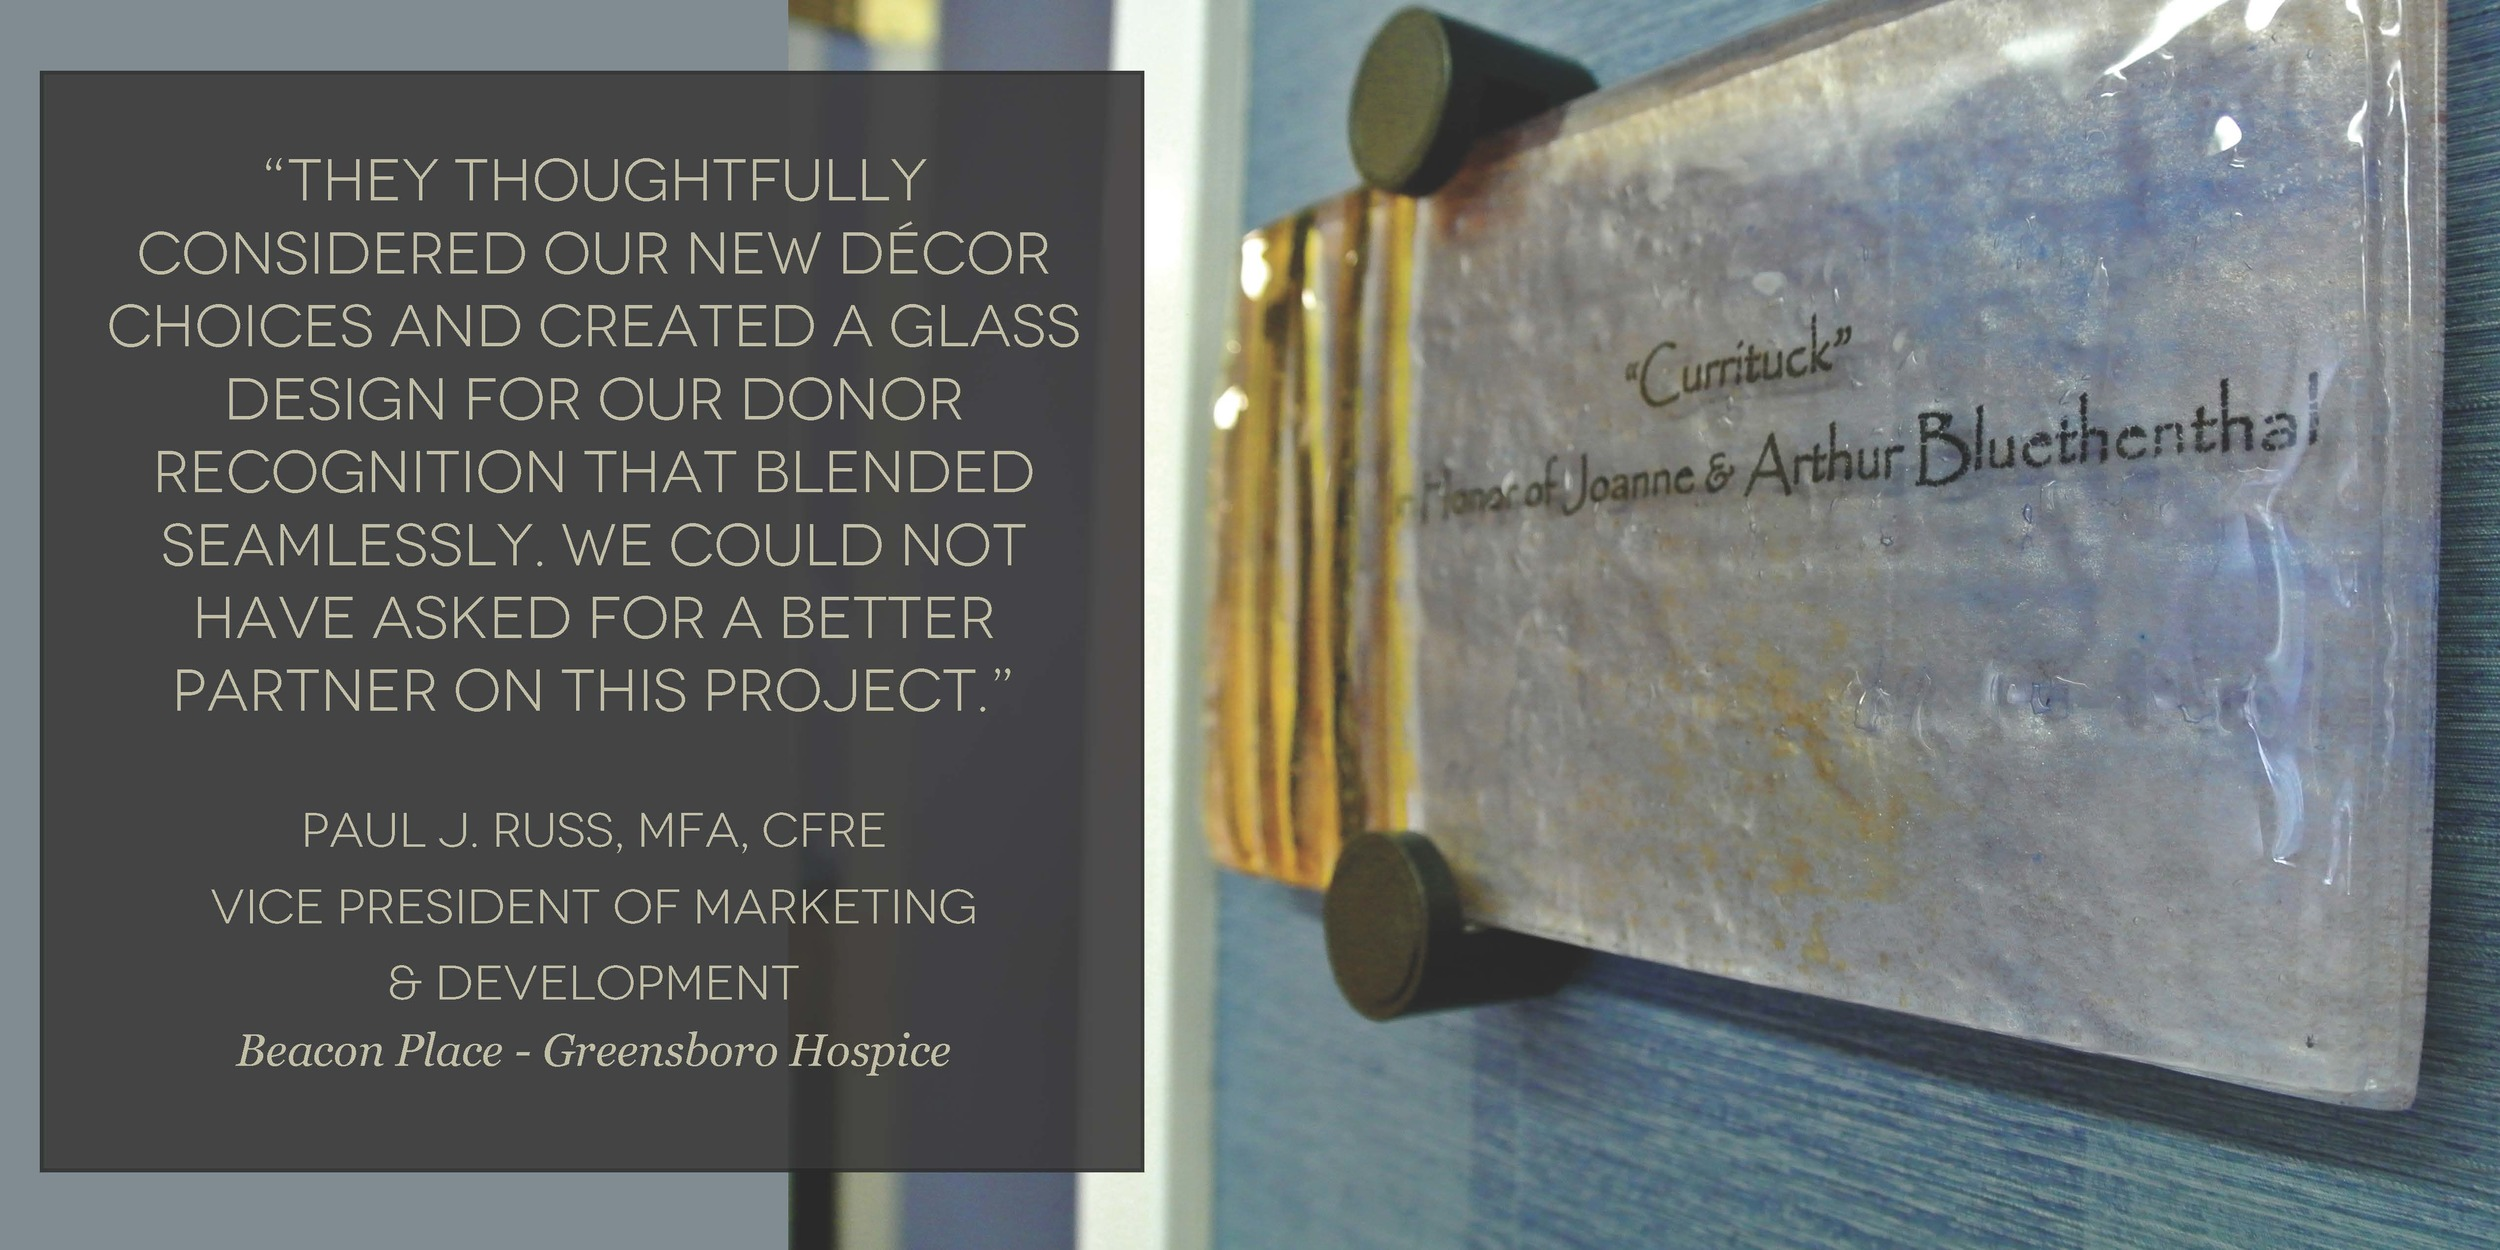 Beacon Place Hospice - Donor Recognition Plaque - Fused and hand-painted glass in gold and black ribbons on blue color palette (quote).